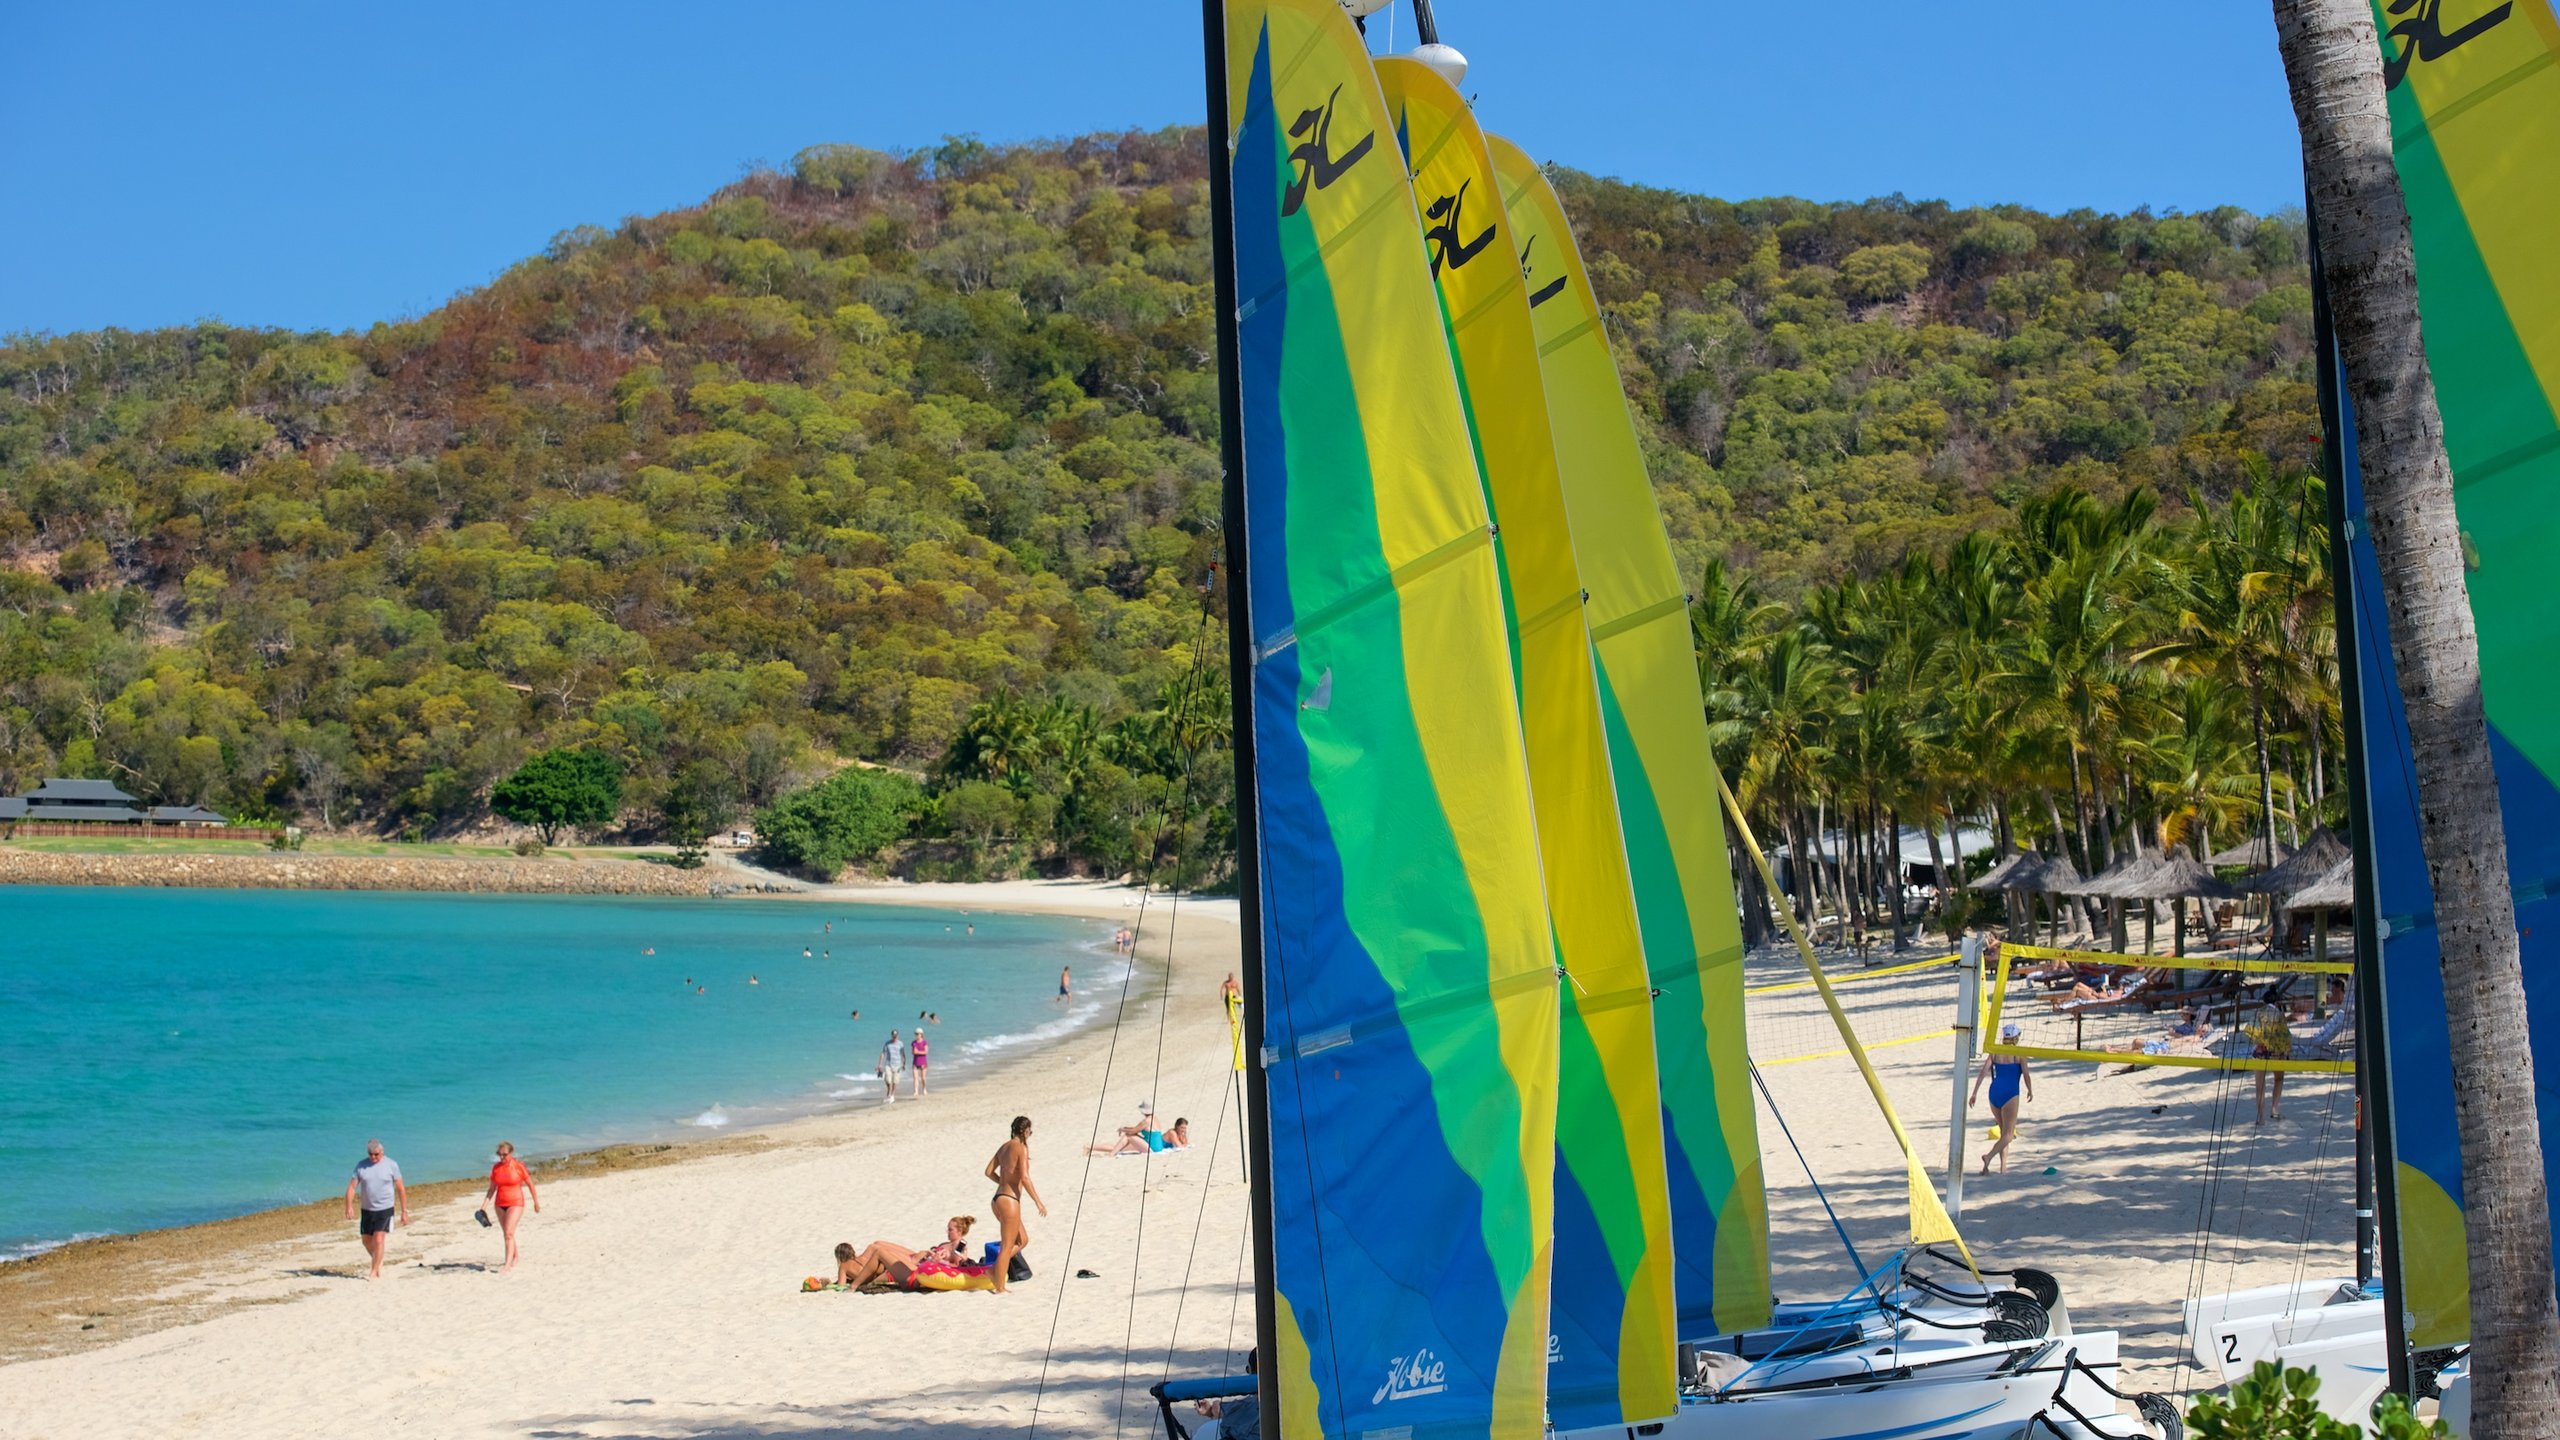 Swim, stroll, try exciting watersports or simply recline under the shade of palm trees and enjoy the views from one of Hamilton Island's main beaches.